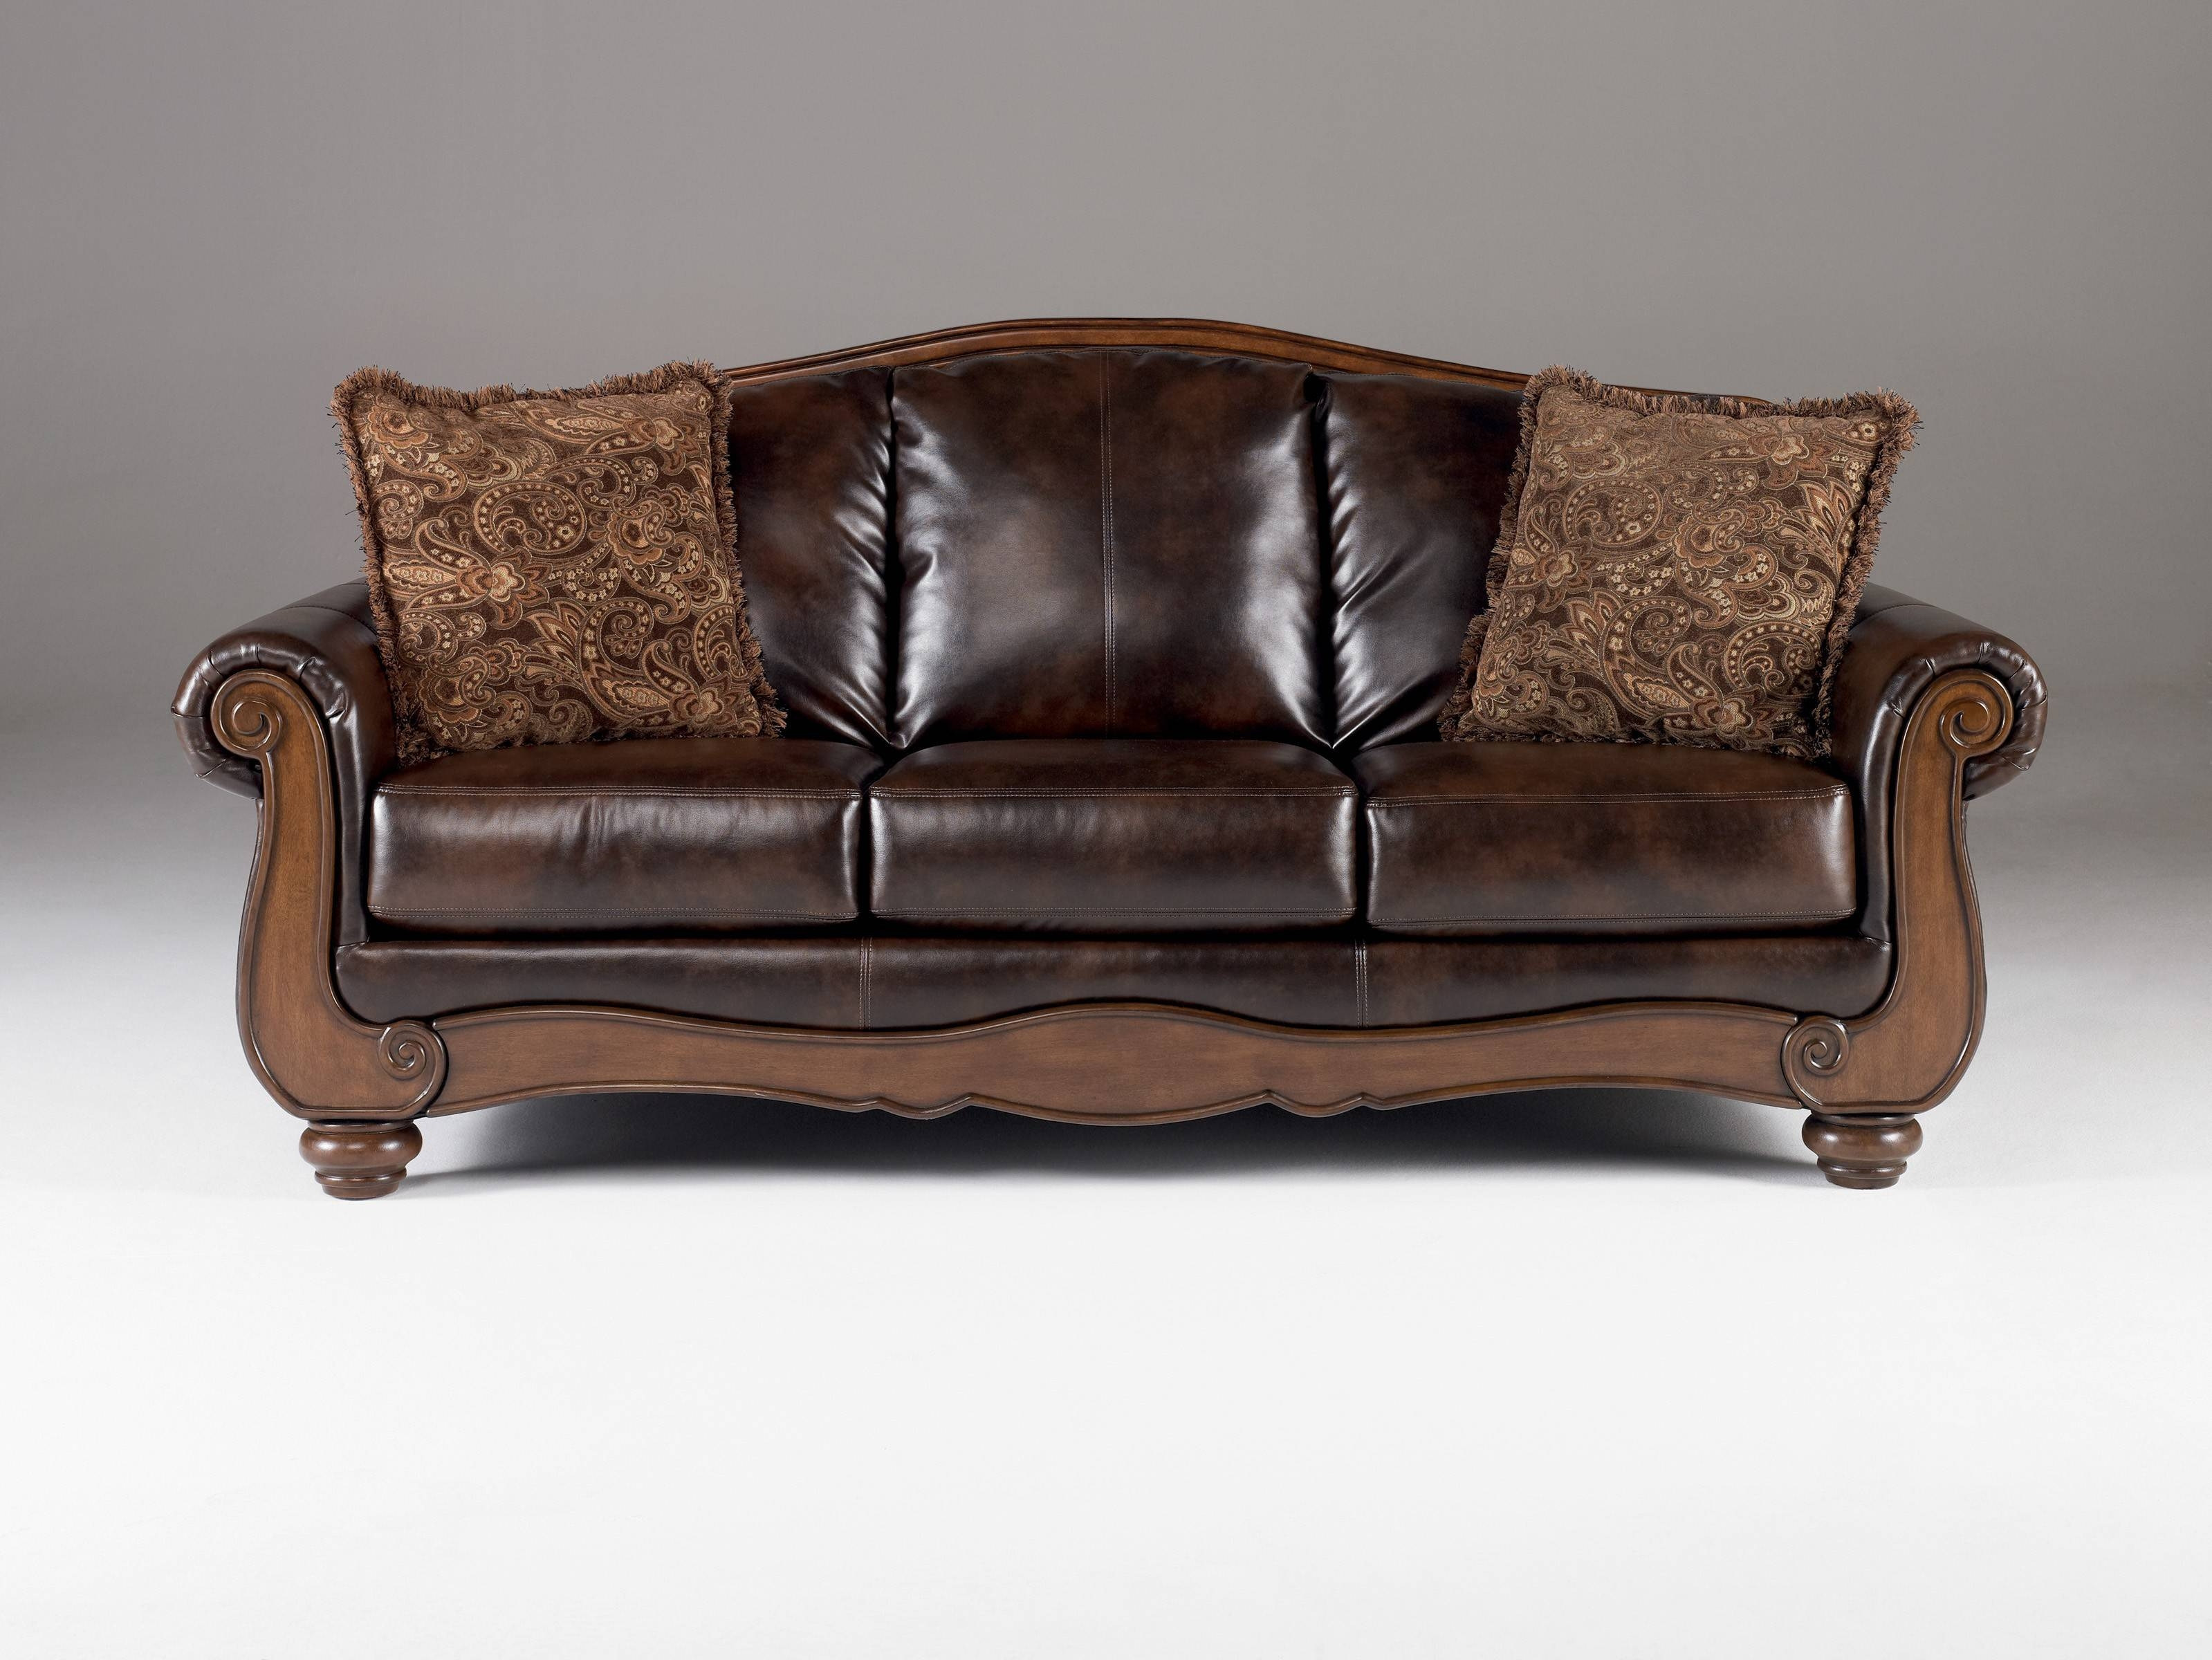 Barcelona Antique 553- Sofa with regard to Antique Sofa Chairs (Image 9 of 30)